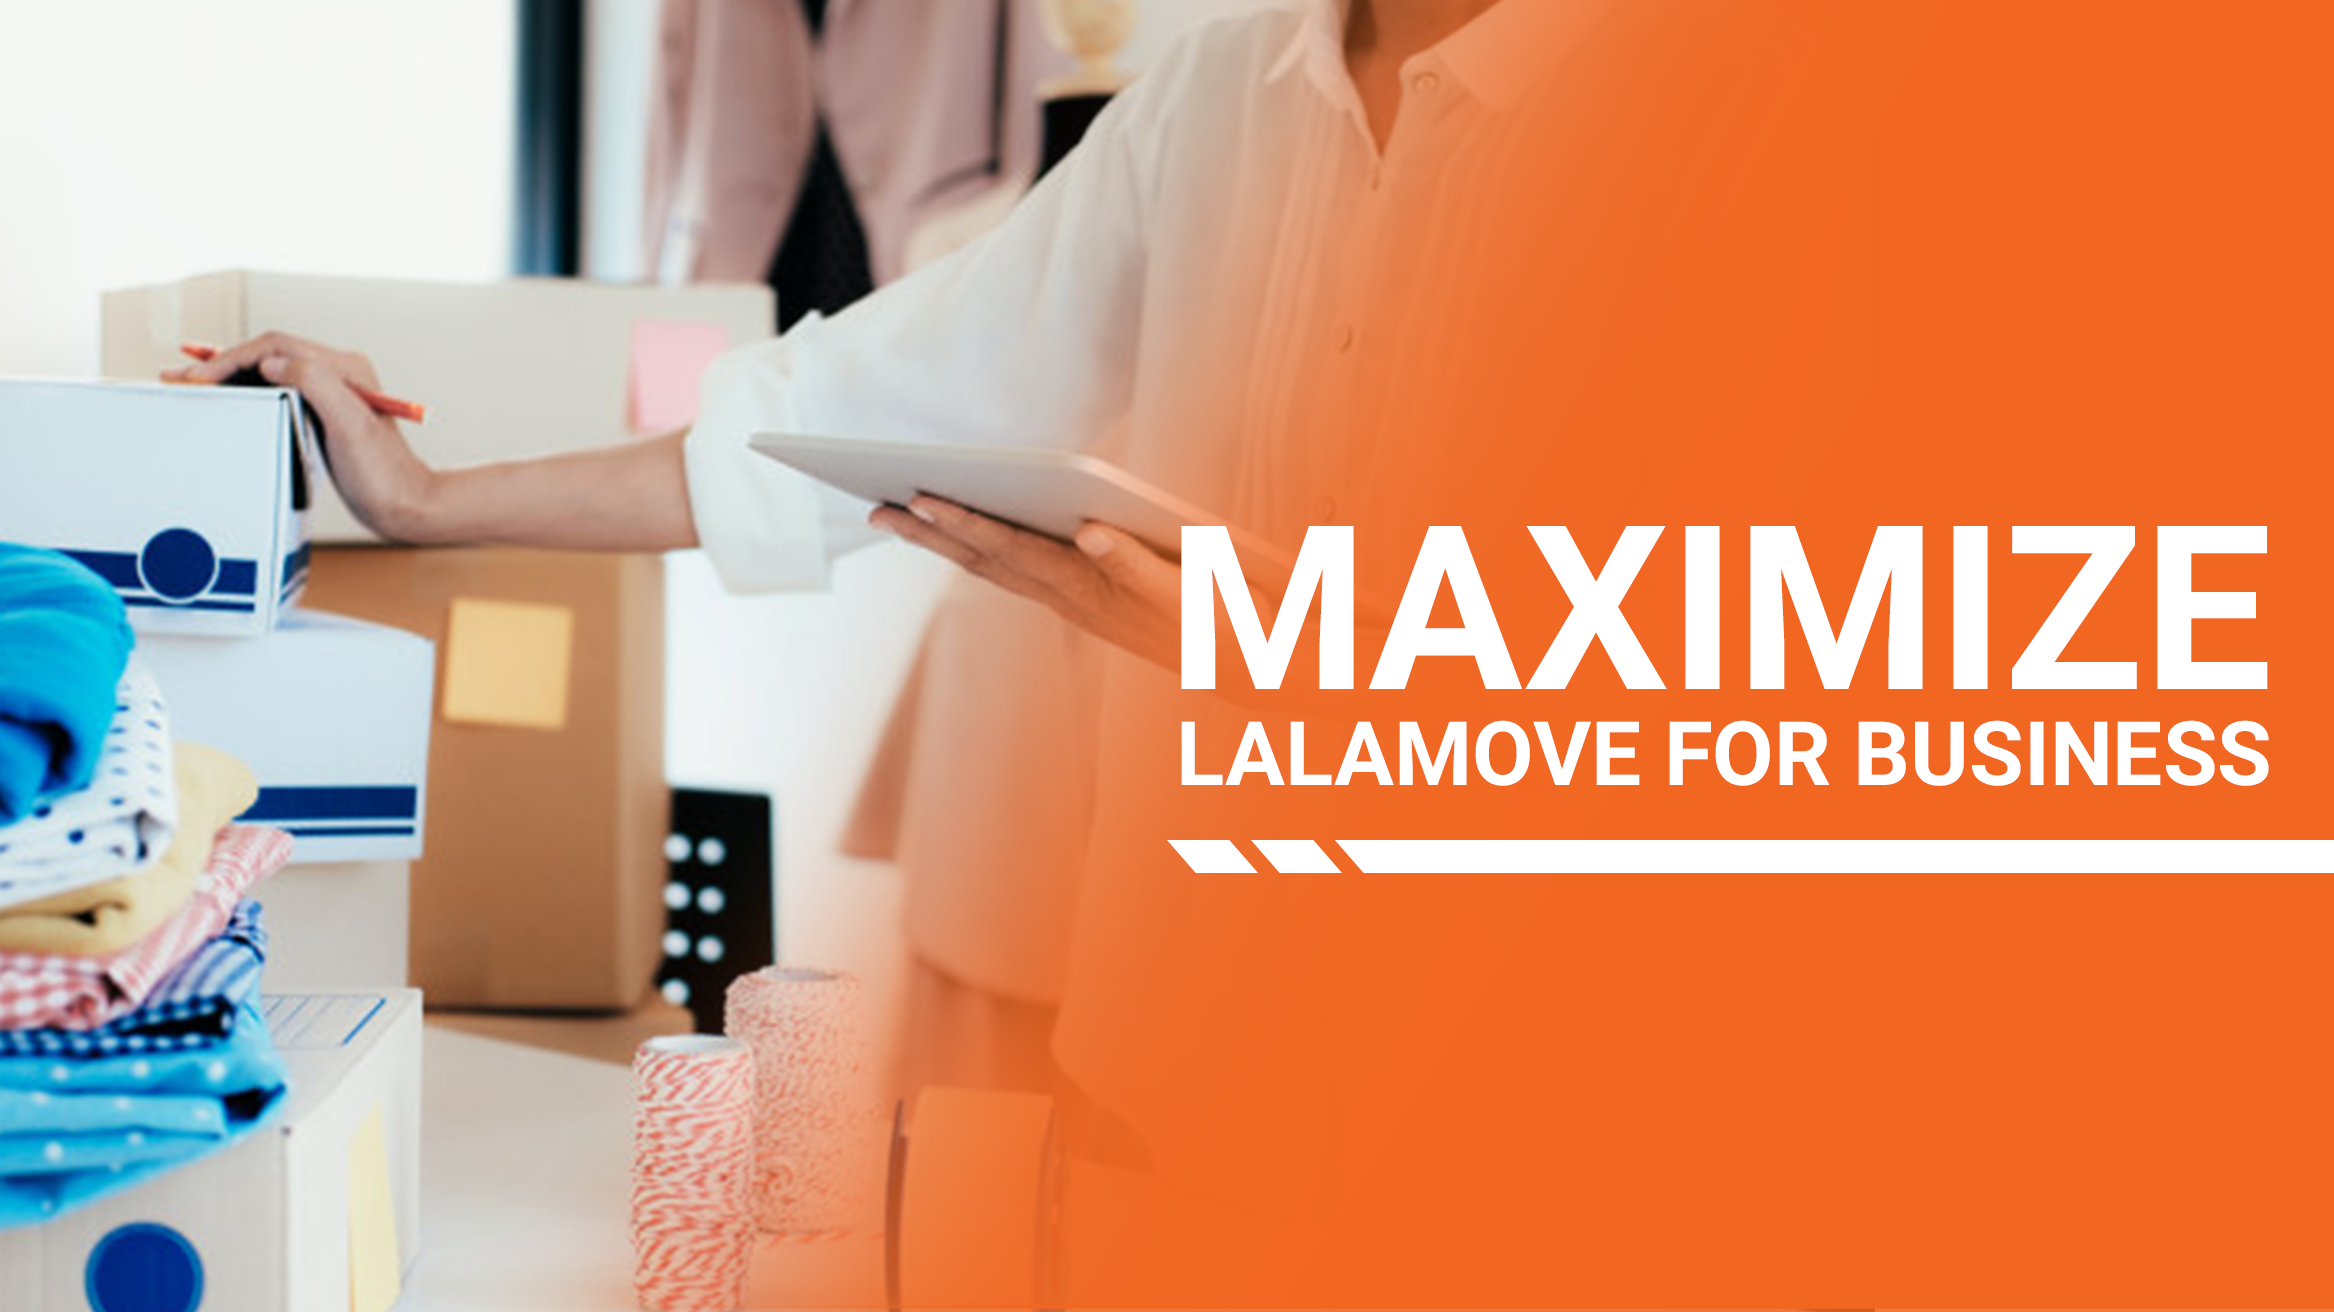 Tips to Use Lalamove for Business to the Fullest